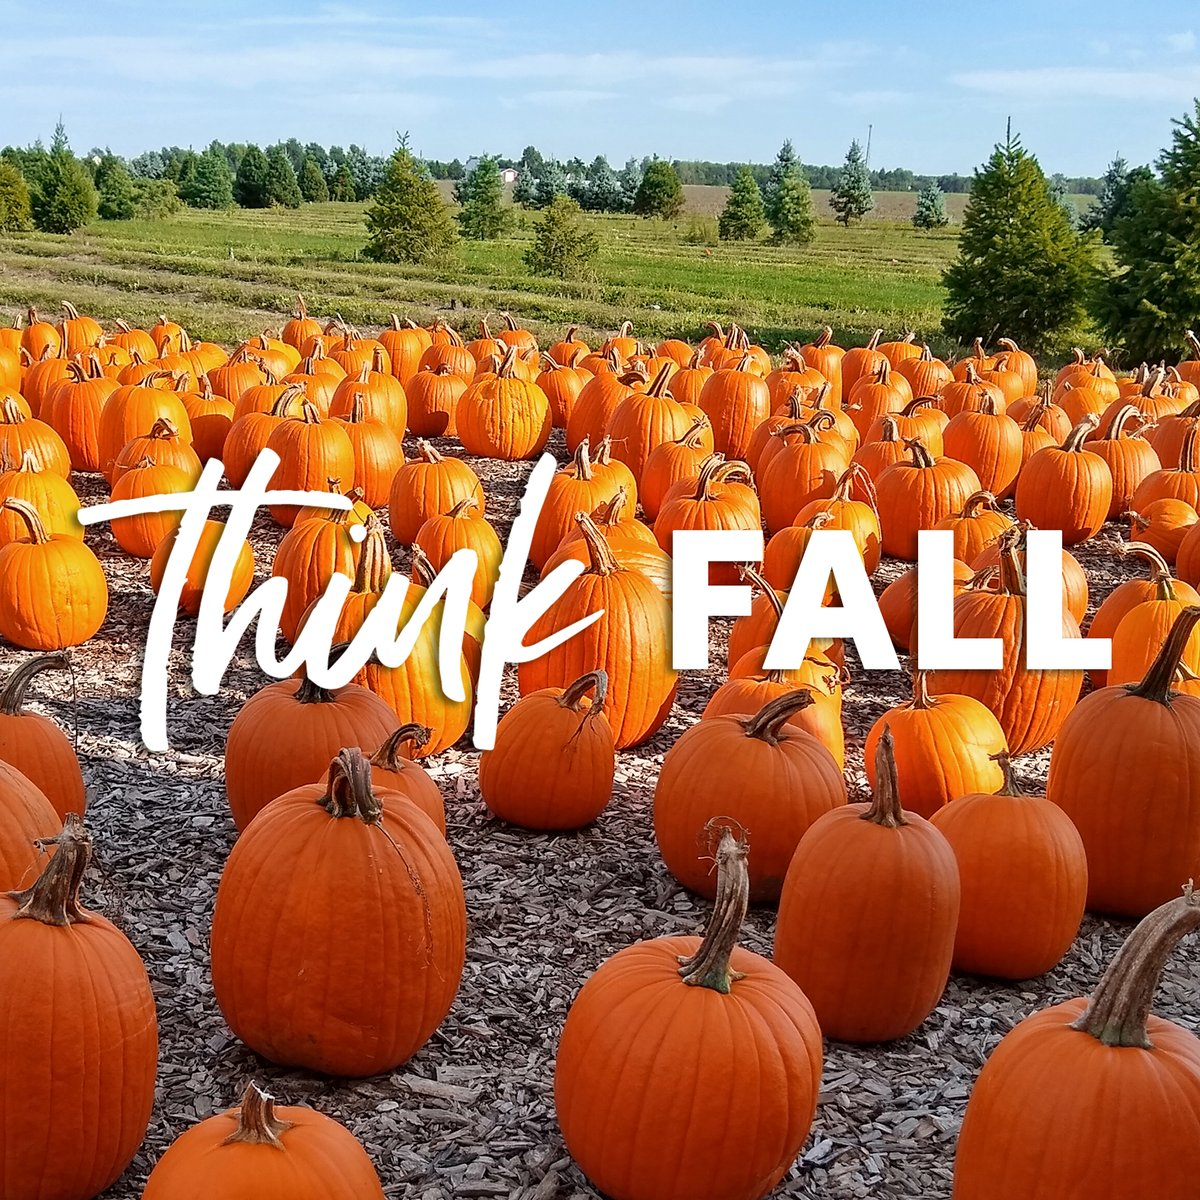 From sipping a hot beverage to going to a pumpkin patch, Bowling Green has many ways to enjoy Fall.  We want to celebrate with a 🍂Fall🍂 Giveaway!  LIKE, COMMENT (with a BG business/attraction that gets you into the Fall spirit), & SHARE. A winner will be chosen September 25th!